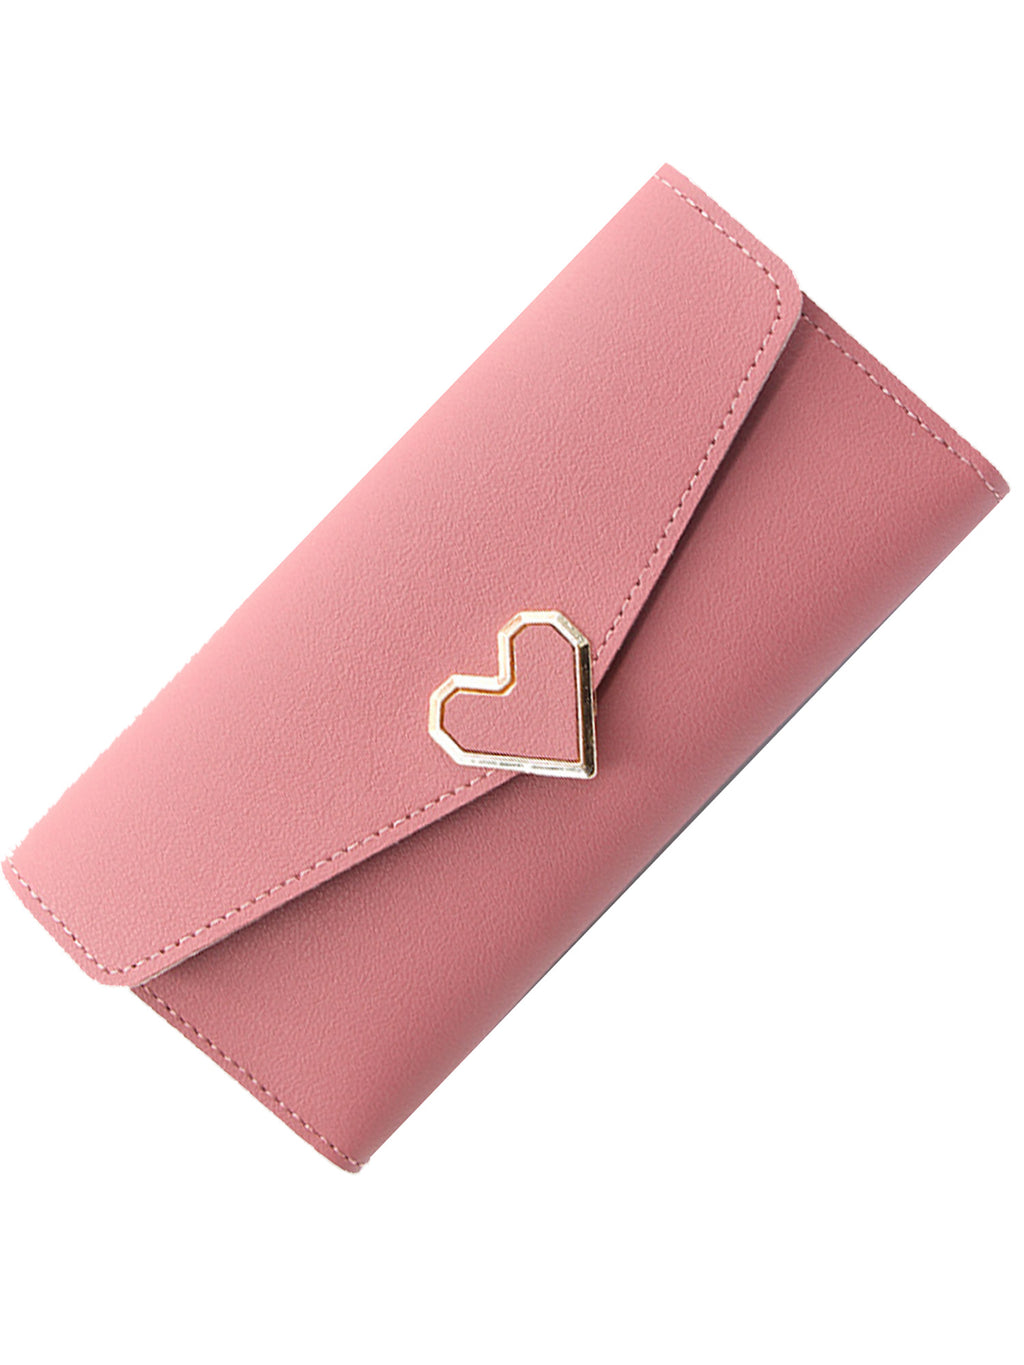 Long Organizer Wallet With Heart Closure